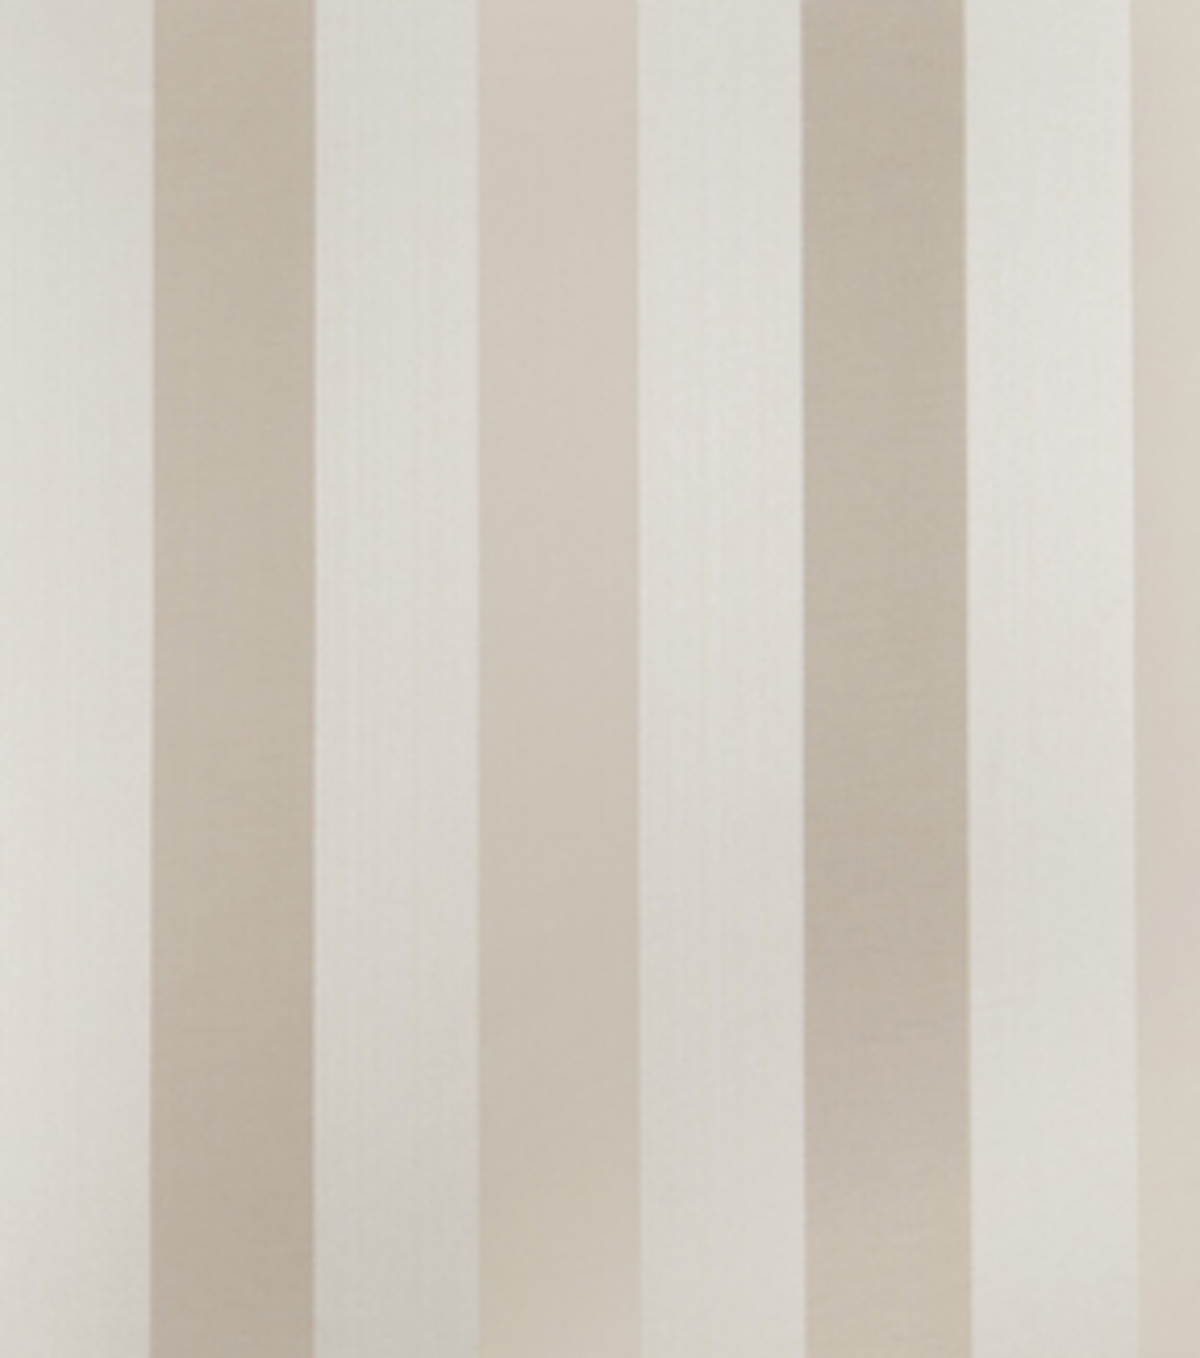 Home Decor 8\u0022x8\u0022 Fabric Swatch-Eaton Square Mcclure Oyster